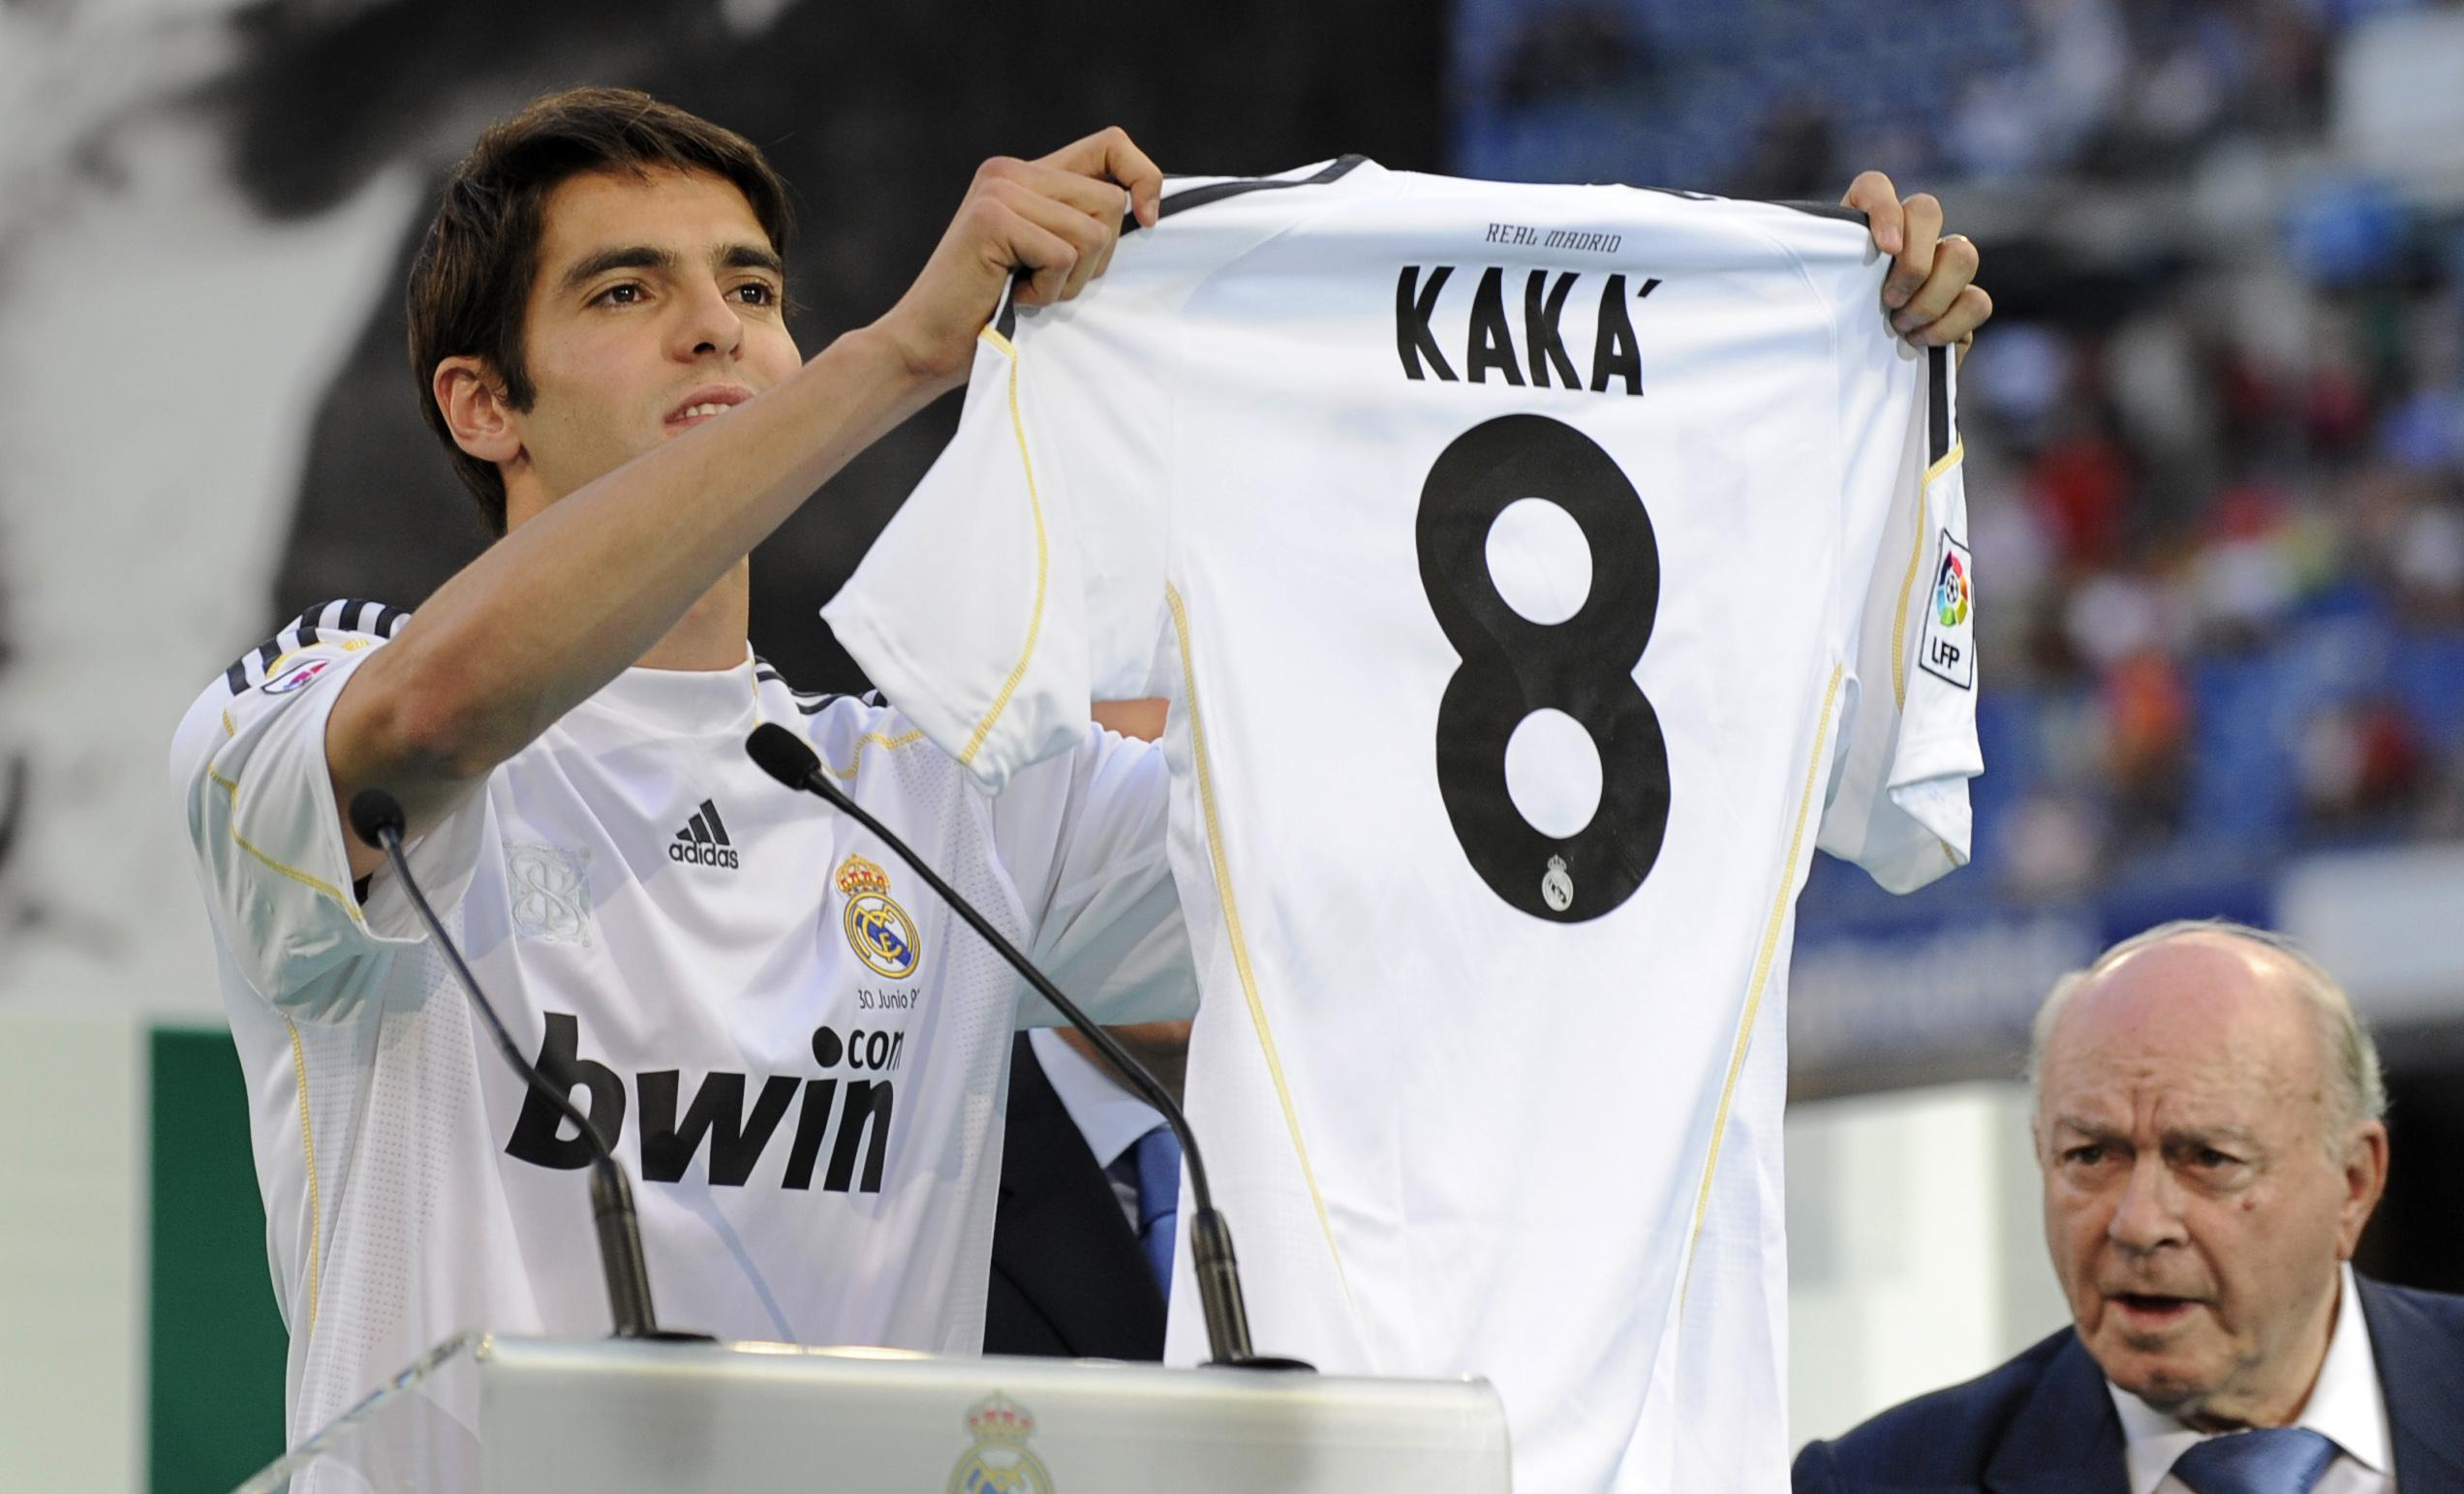 He eventually moved to Real Madrid for £56million